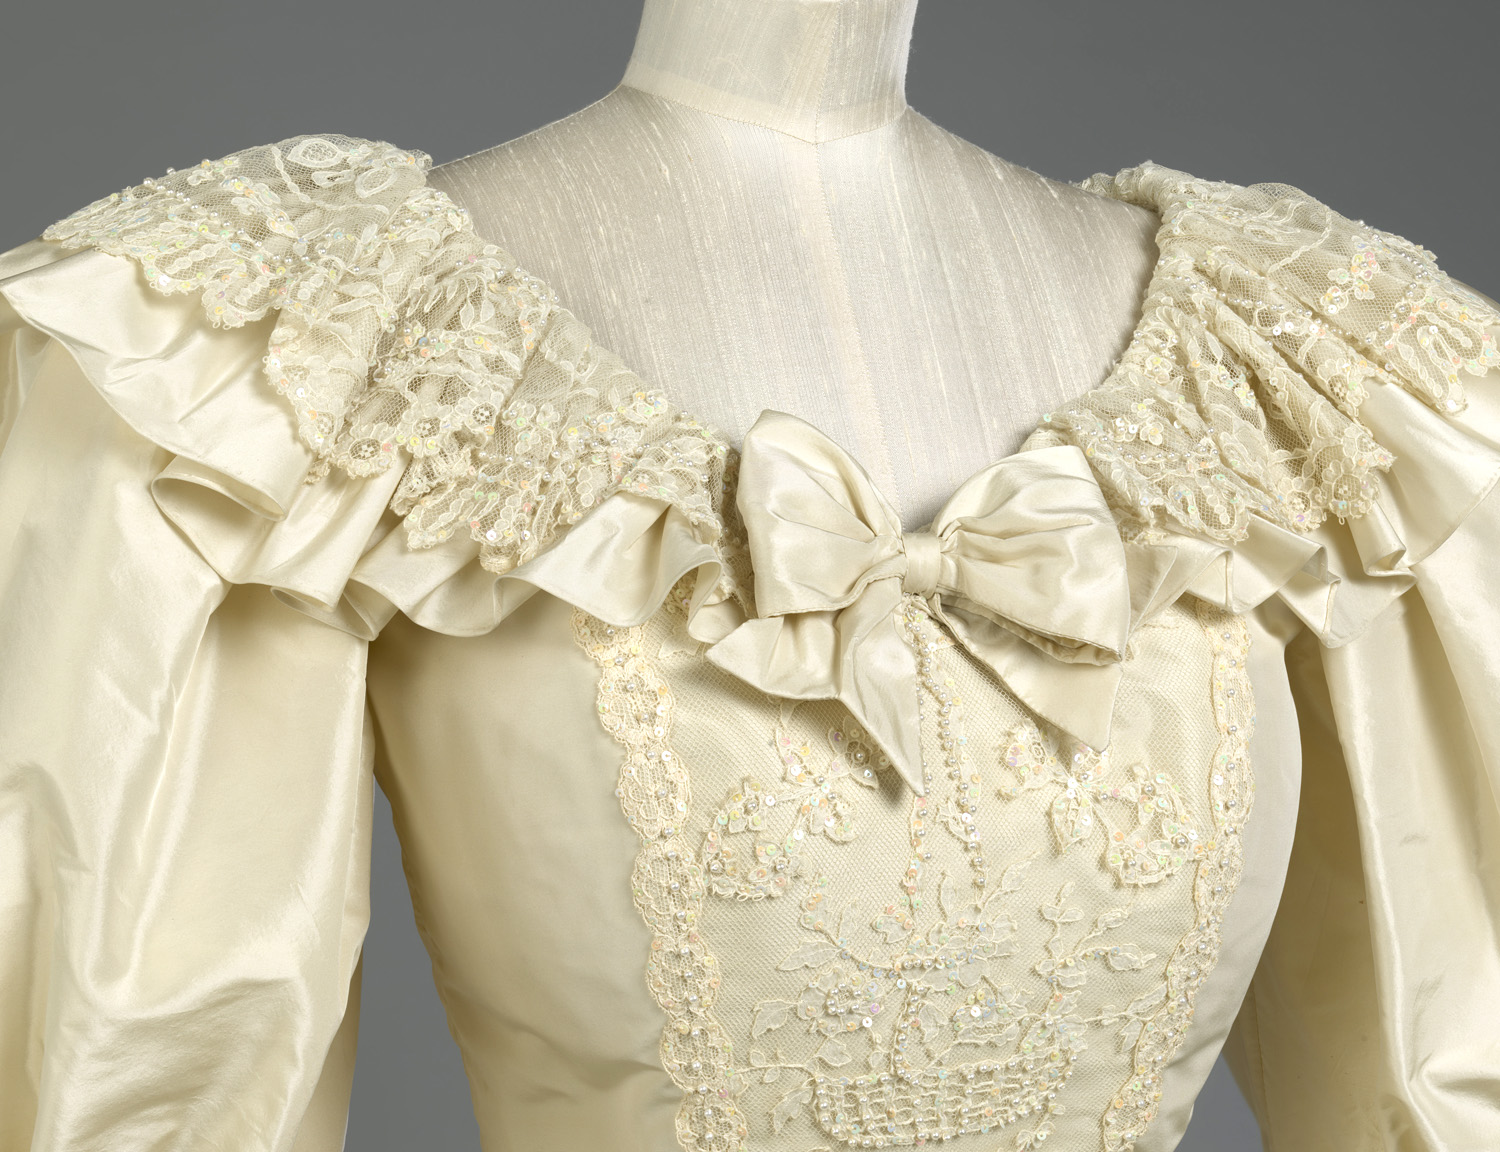 Wedding gown of Diana, Princess of Wales